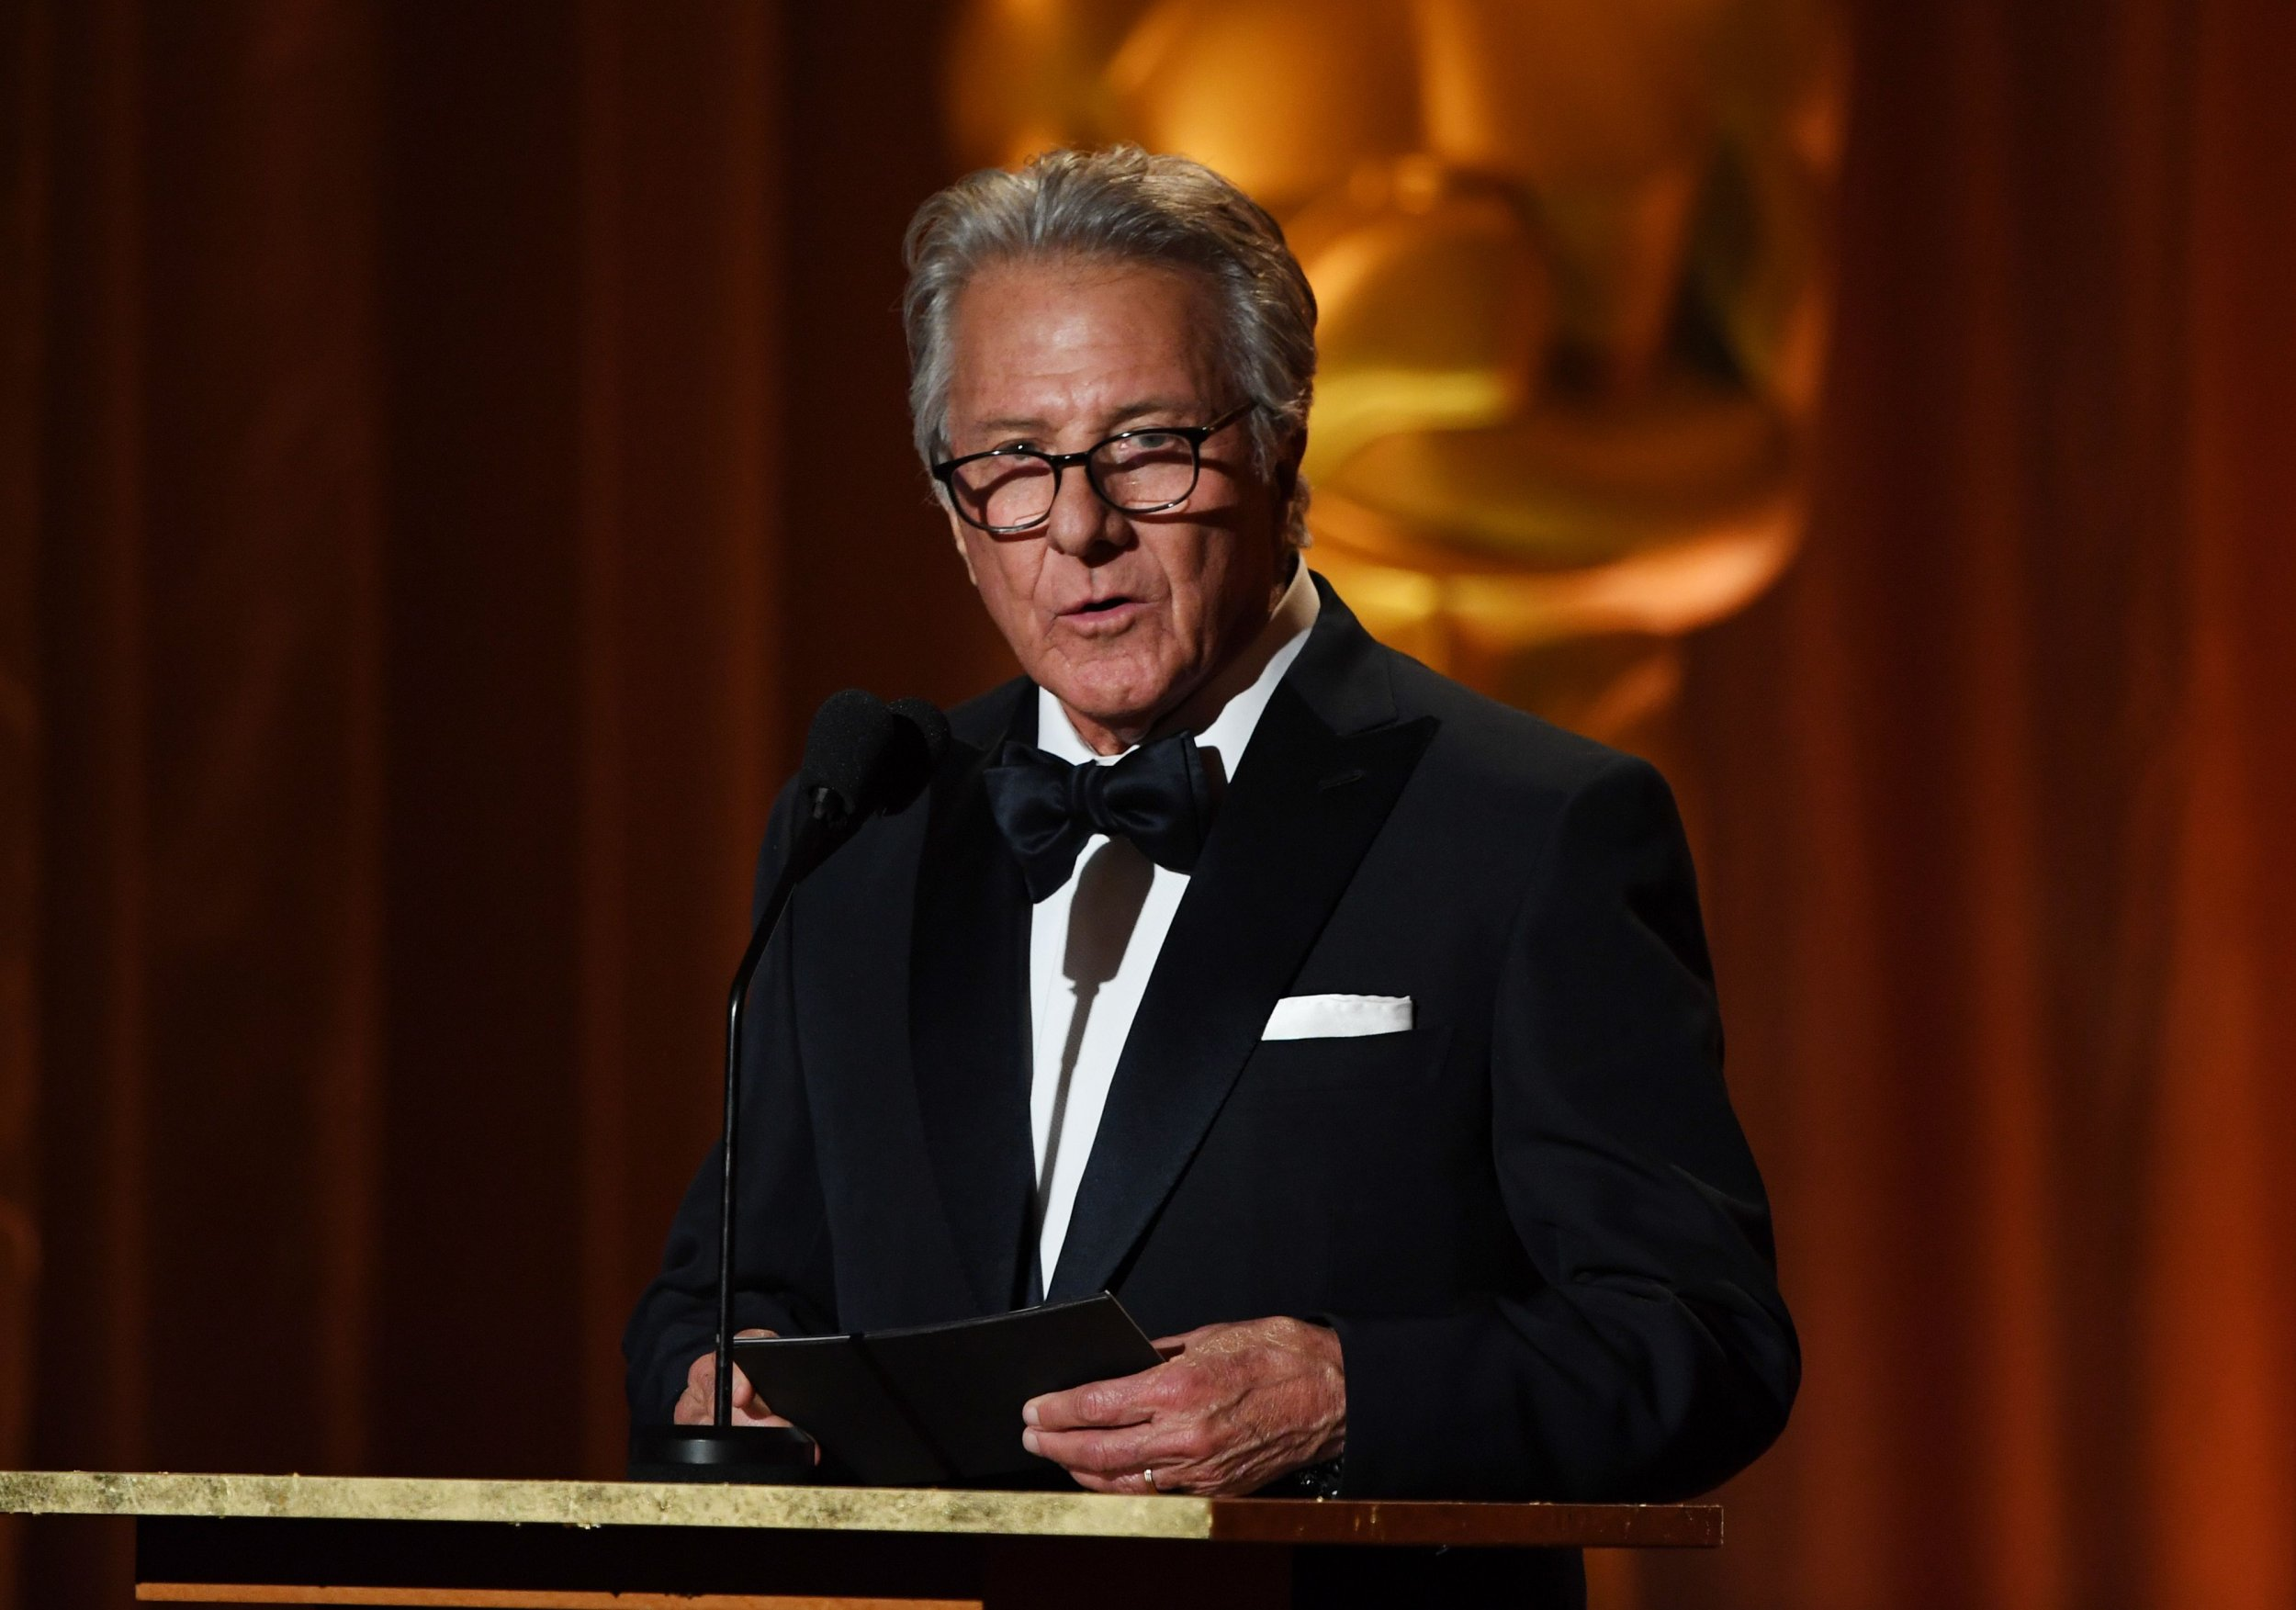 4 film industry veterans celebrated with honorary Oscar at Governors Awards